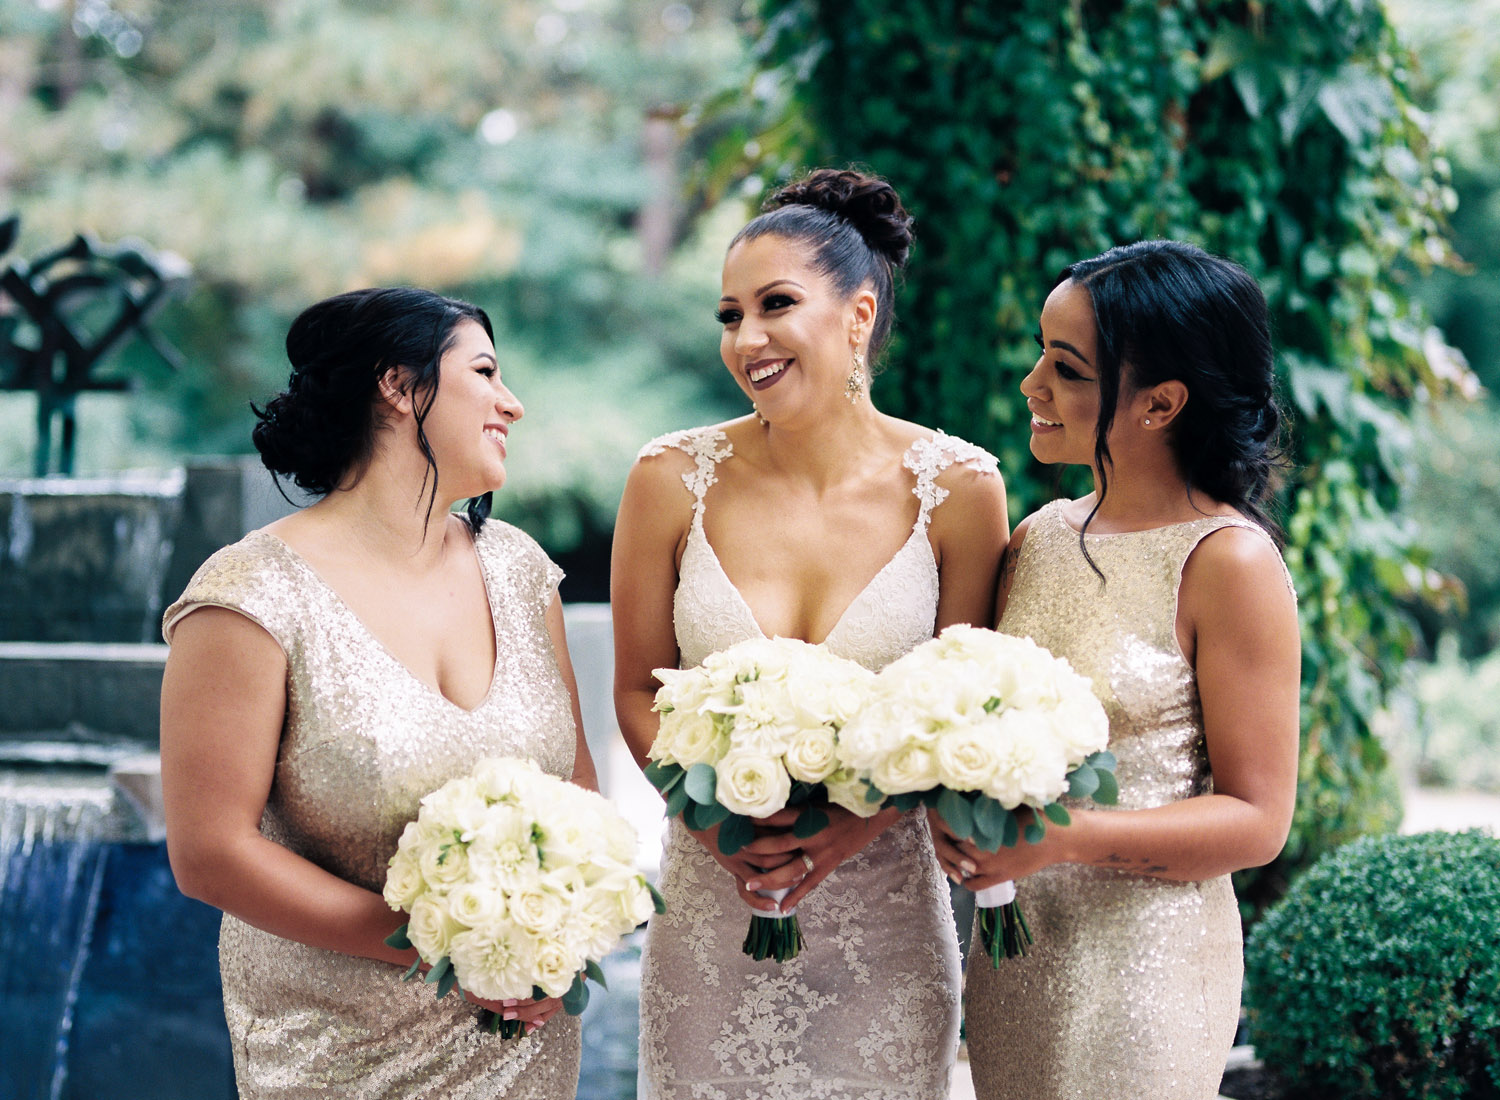 gold wedding dresses seattle bride wedding.jpg